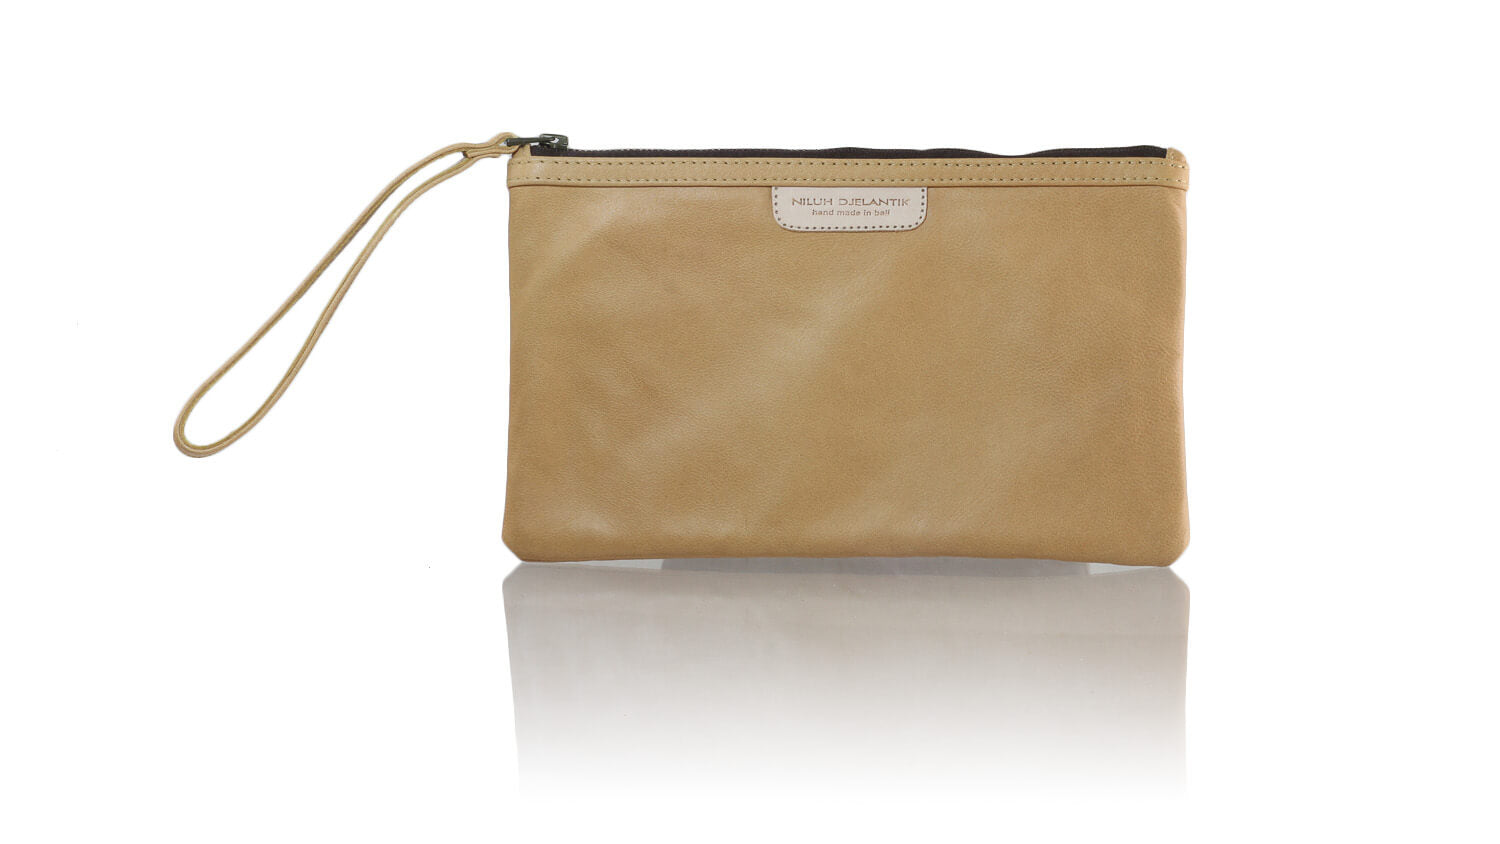 Leather-shoes-Clutch 14x23 - Nude-Zipper Clutch-NILUH DJELANTIK-NILUH DJELANTIK